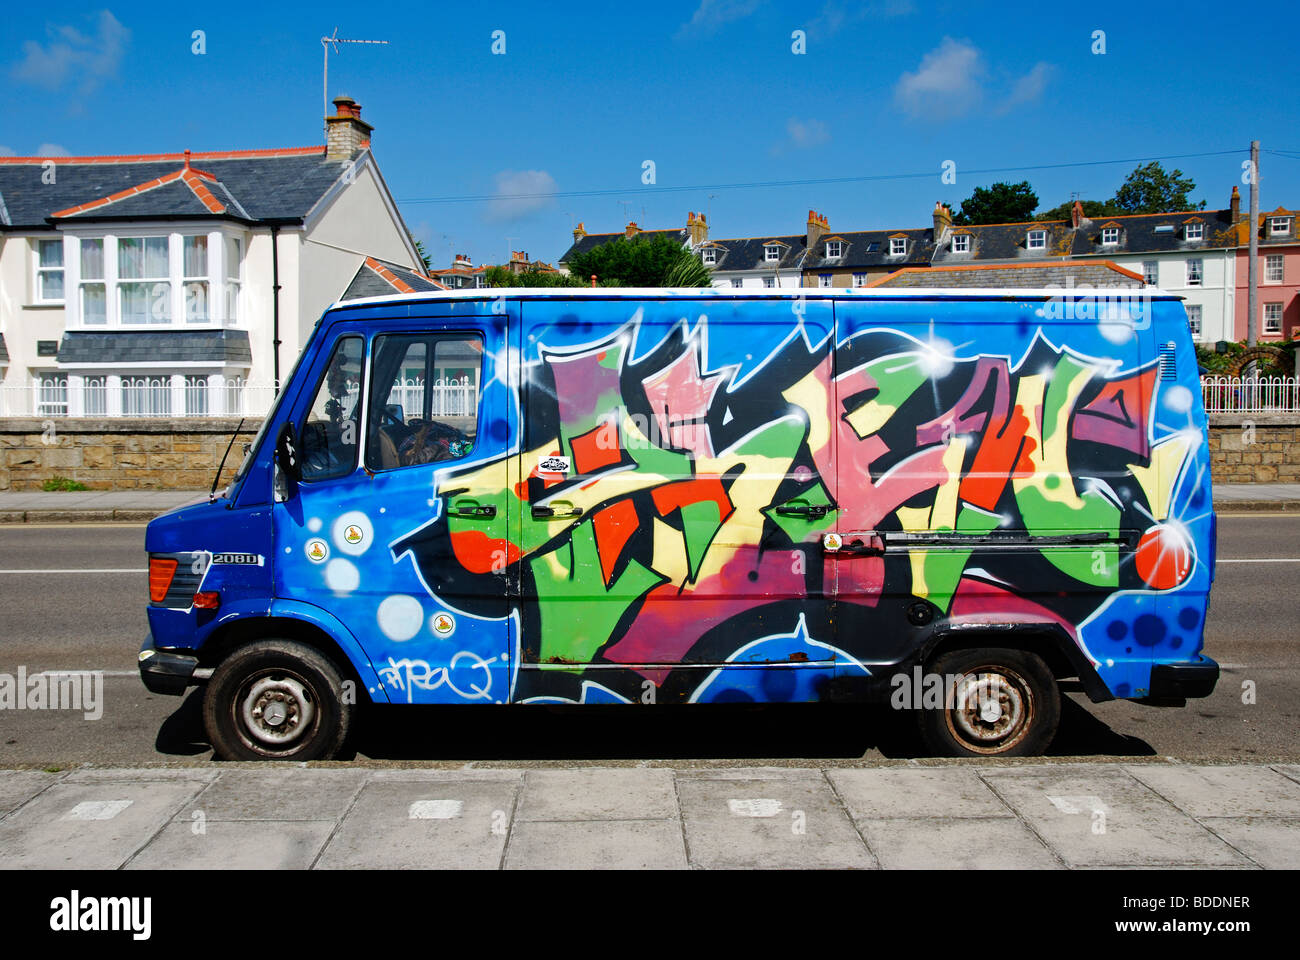 a ford transit van with graffiti style paintwork, uk - Stock Image